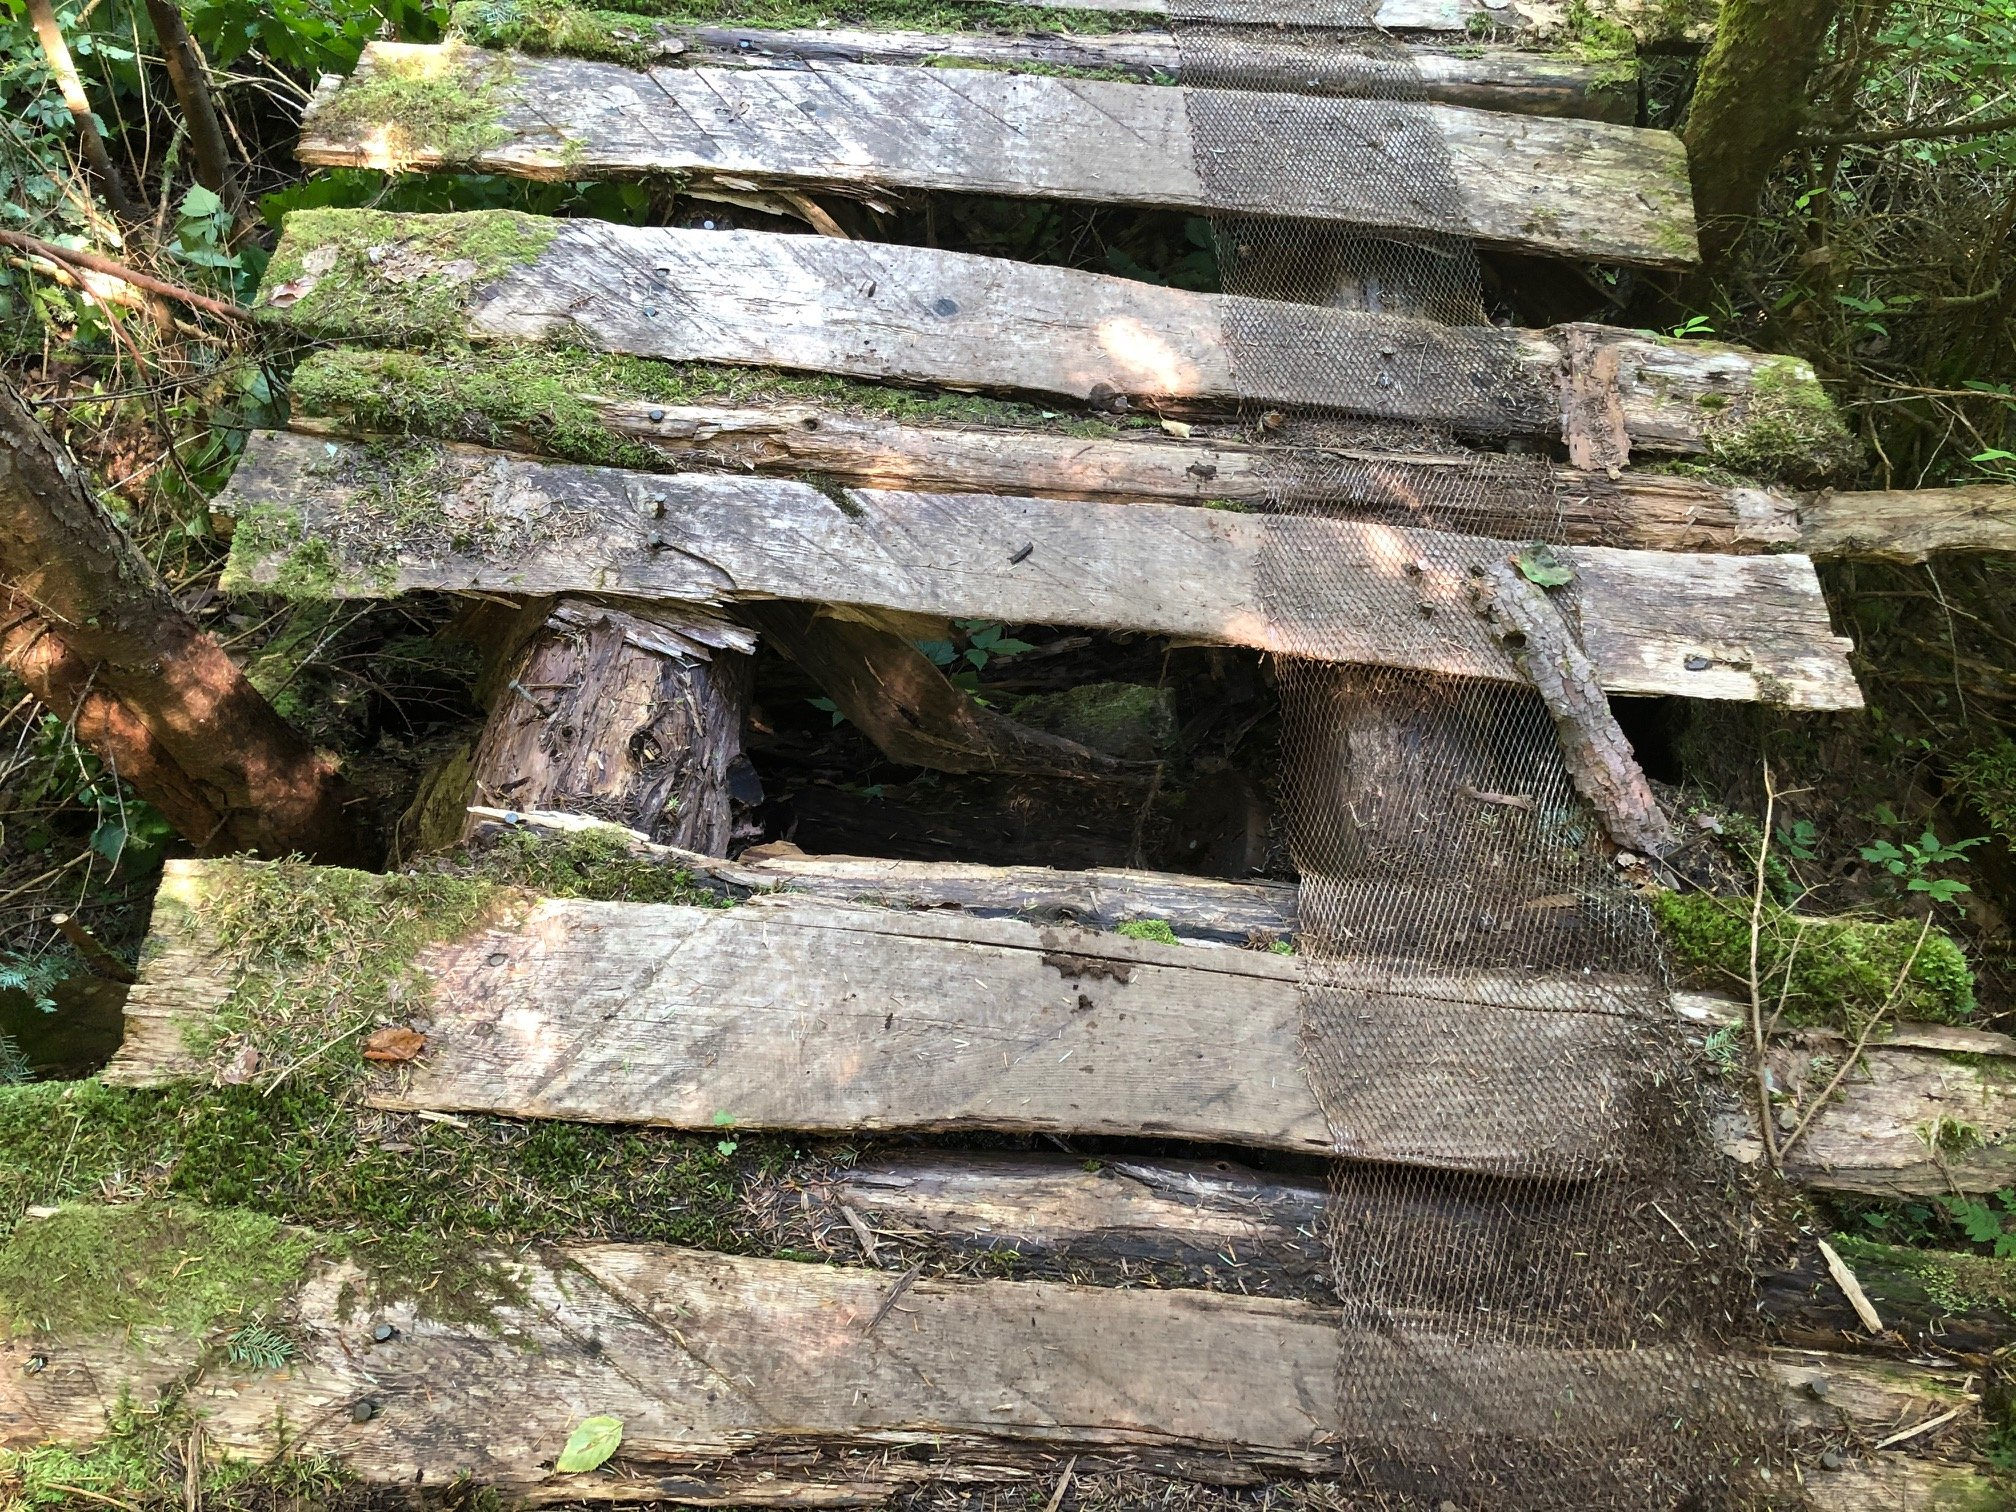 An old wood bridge on a trail missing a piece of decking